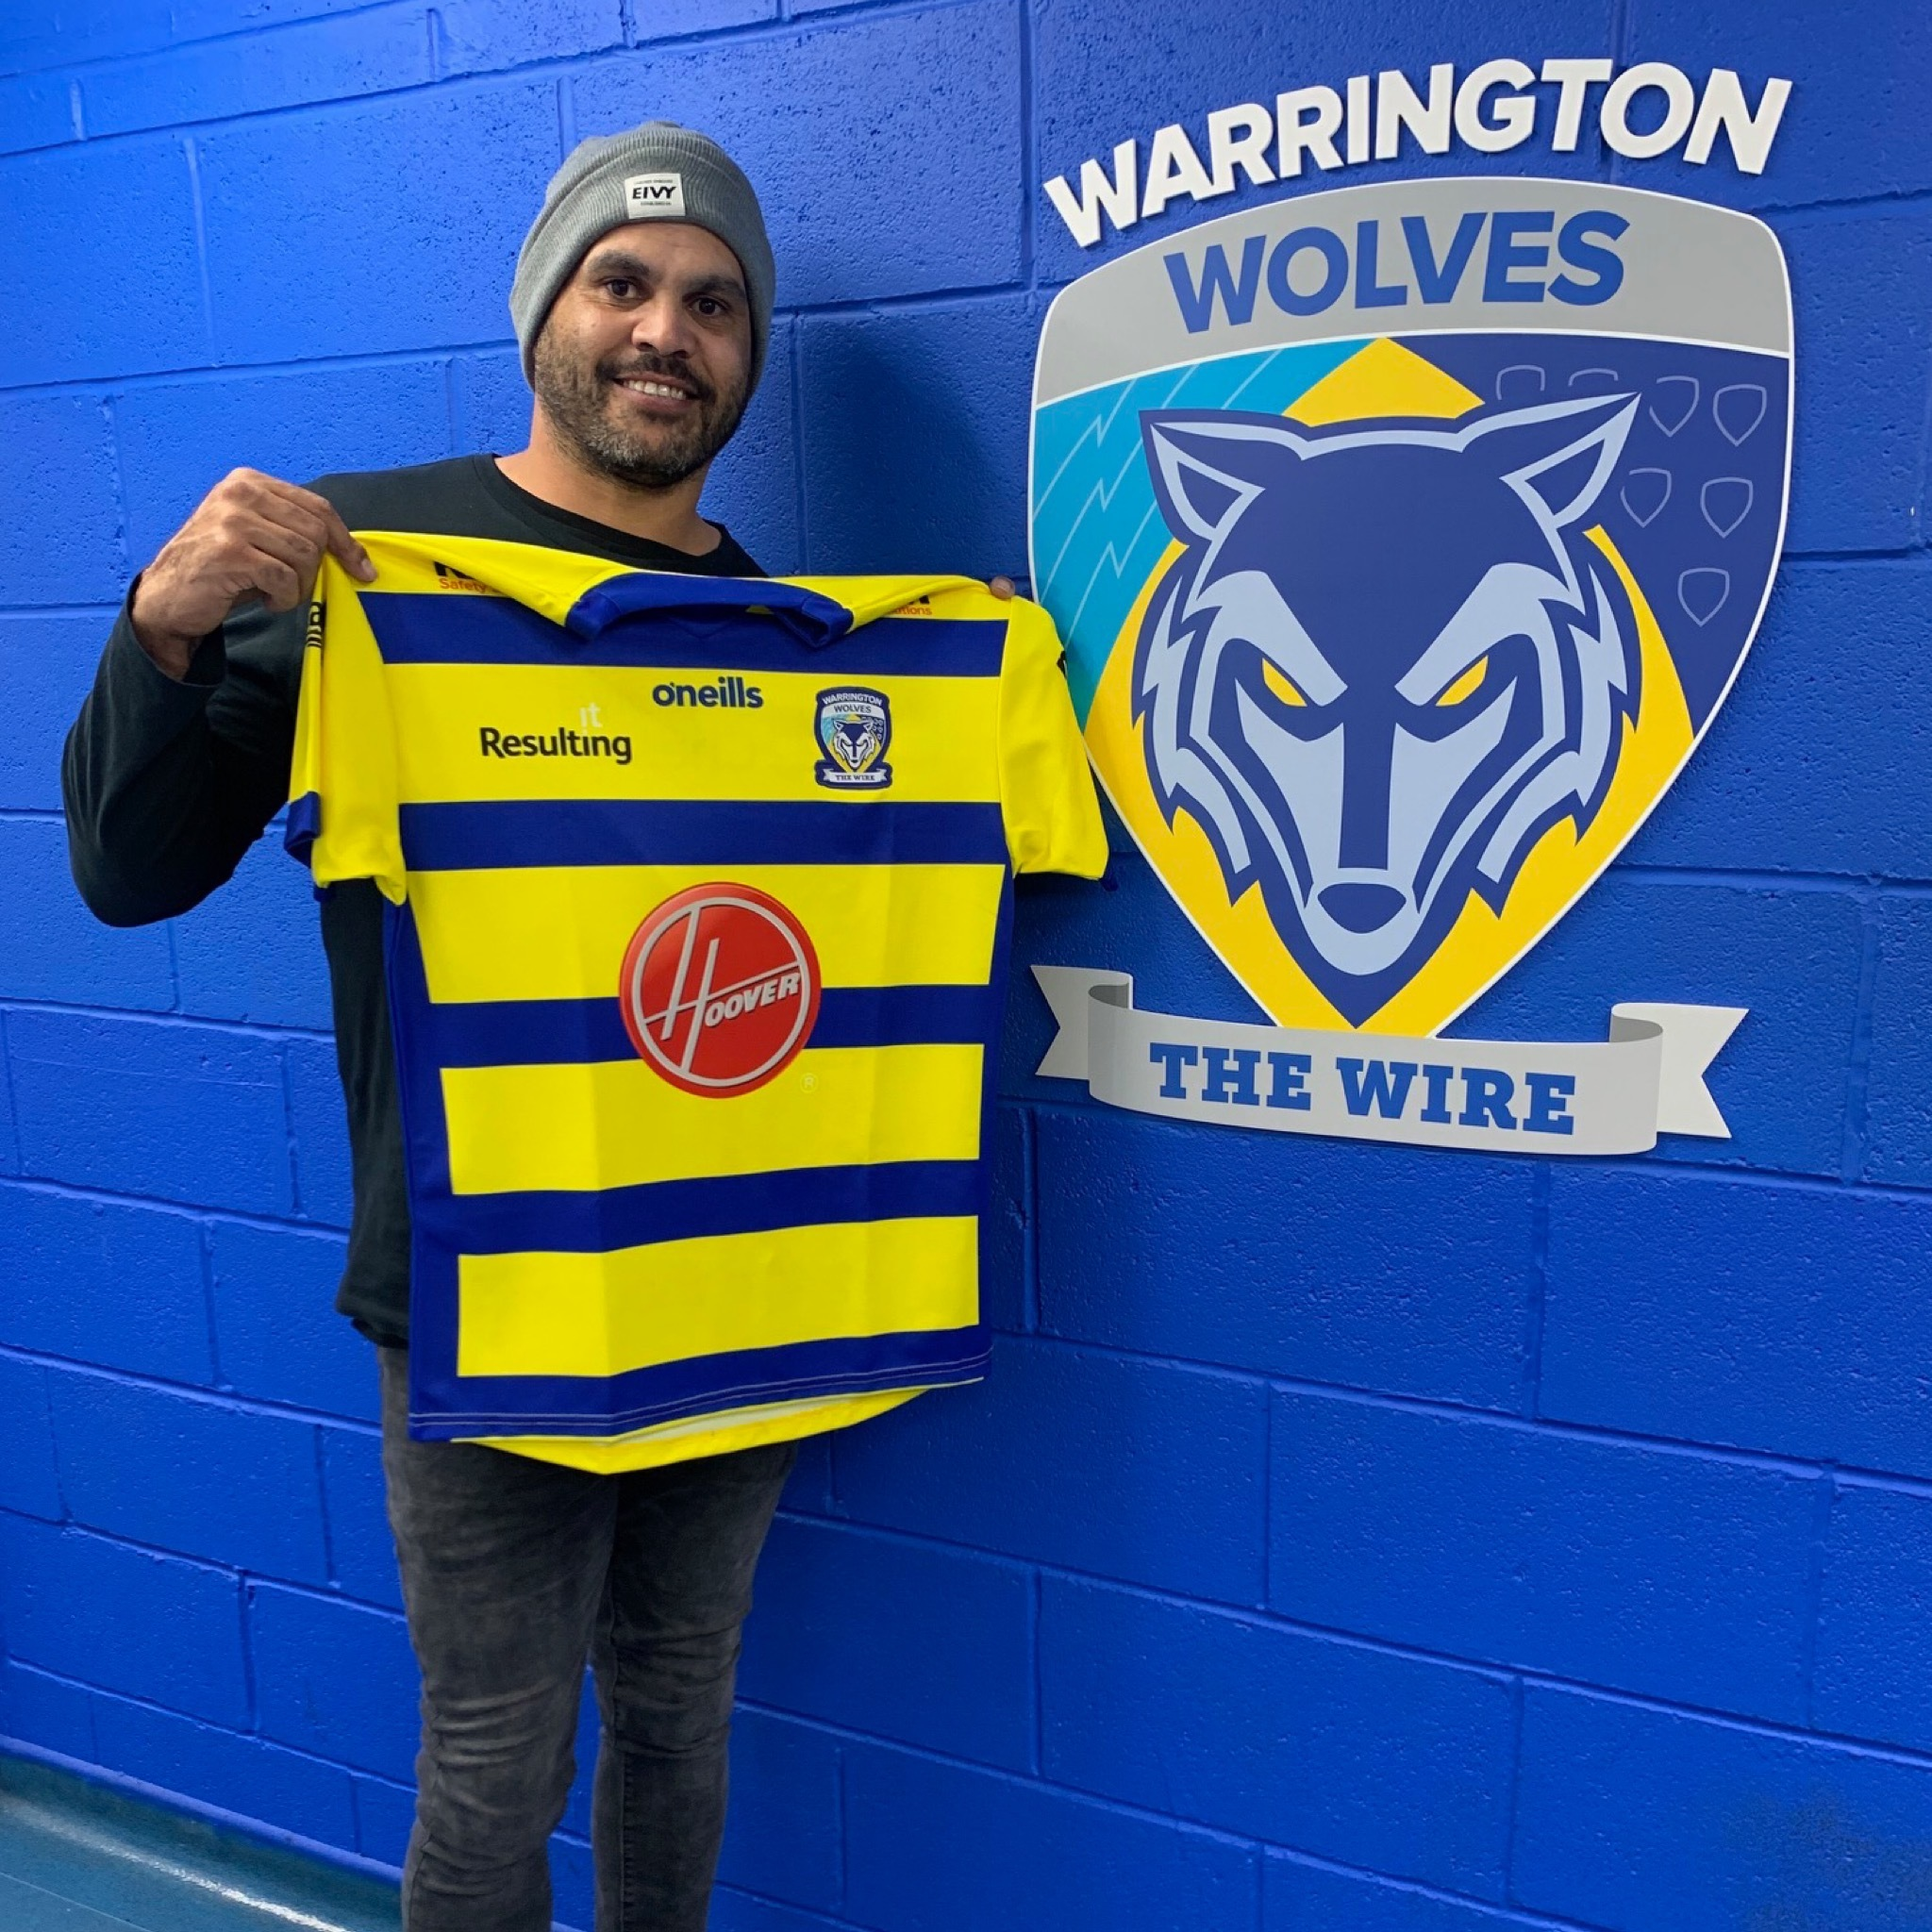 The shirt worn by Greg Inglis during the 2021 season will have the number three on the back. Picture by Warrington Wolves